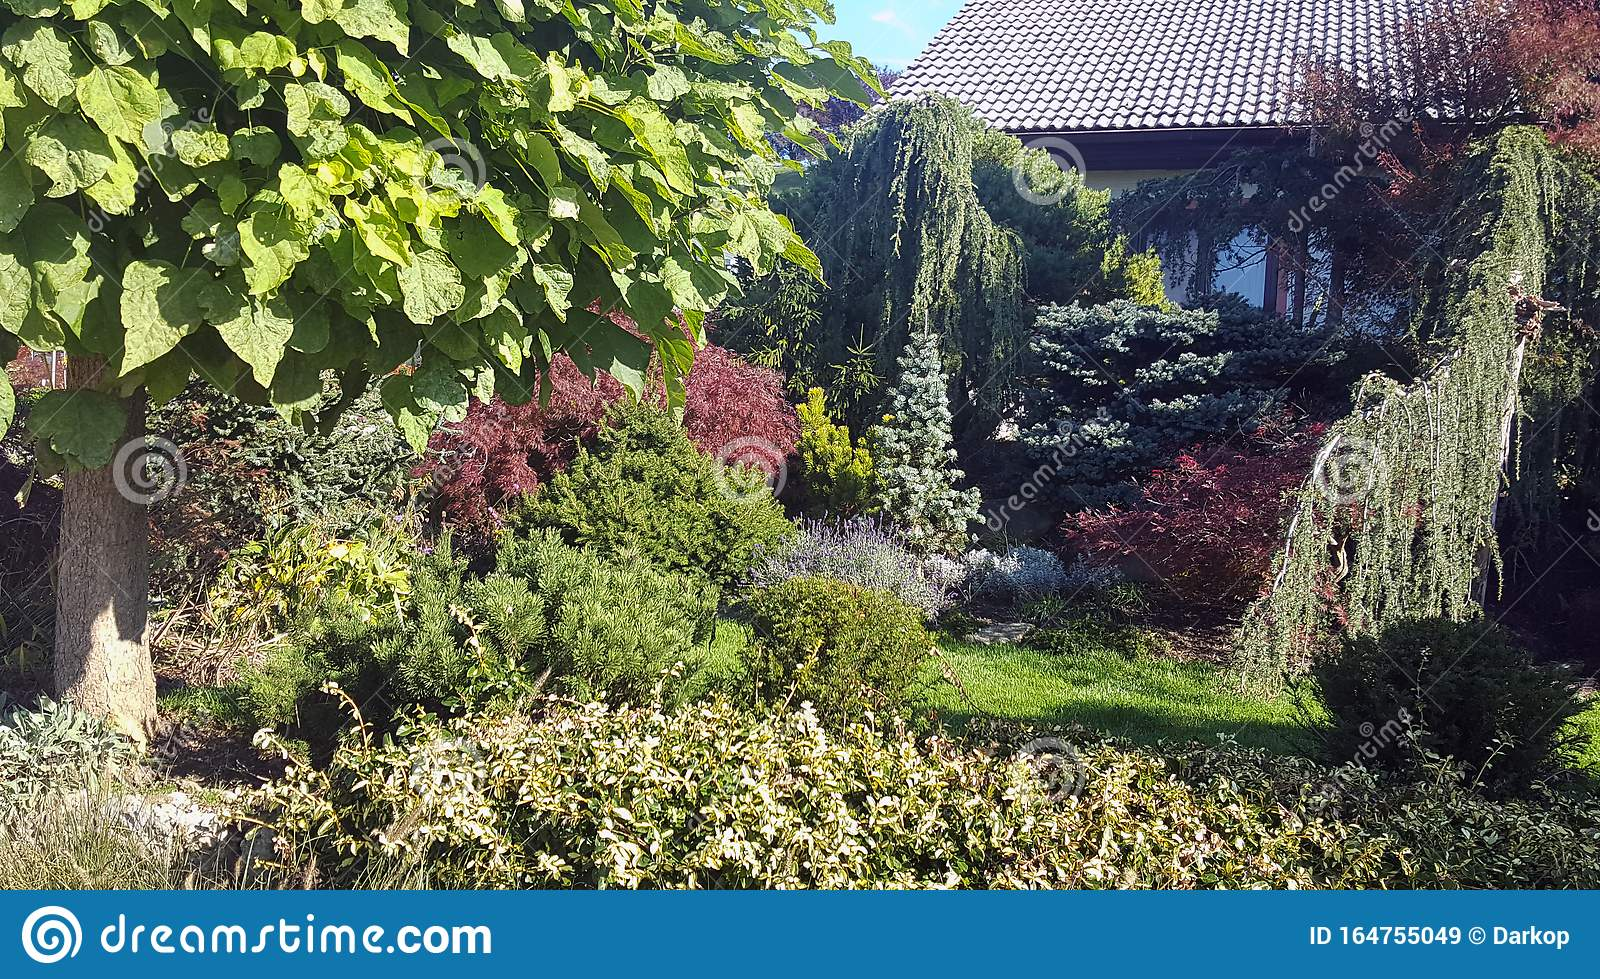 Ornamental Garden Planted With Low Growing Conifers And Trees